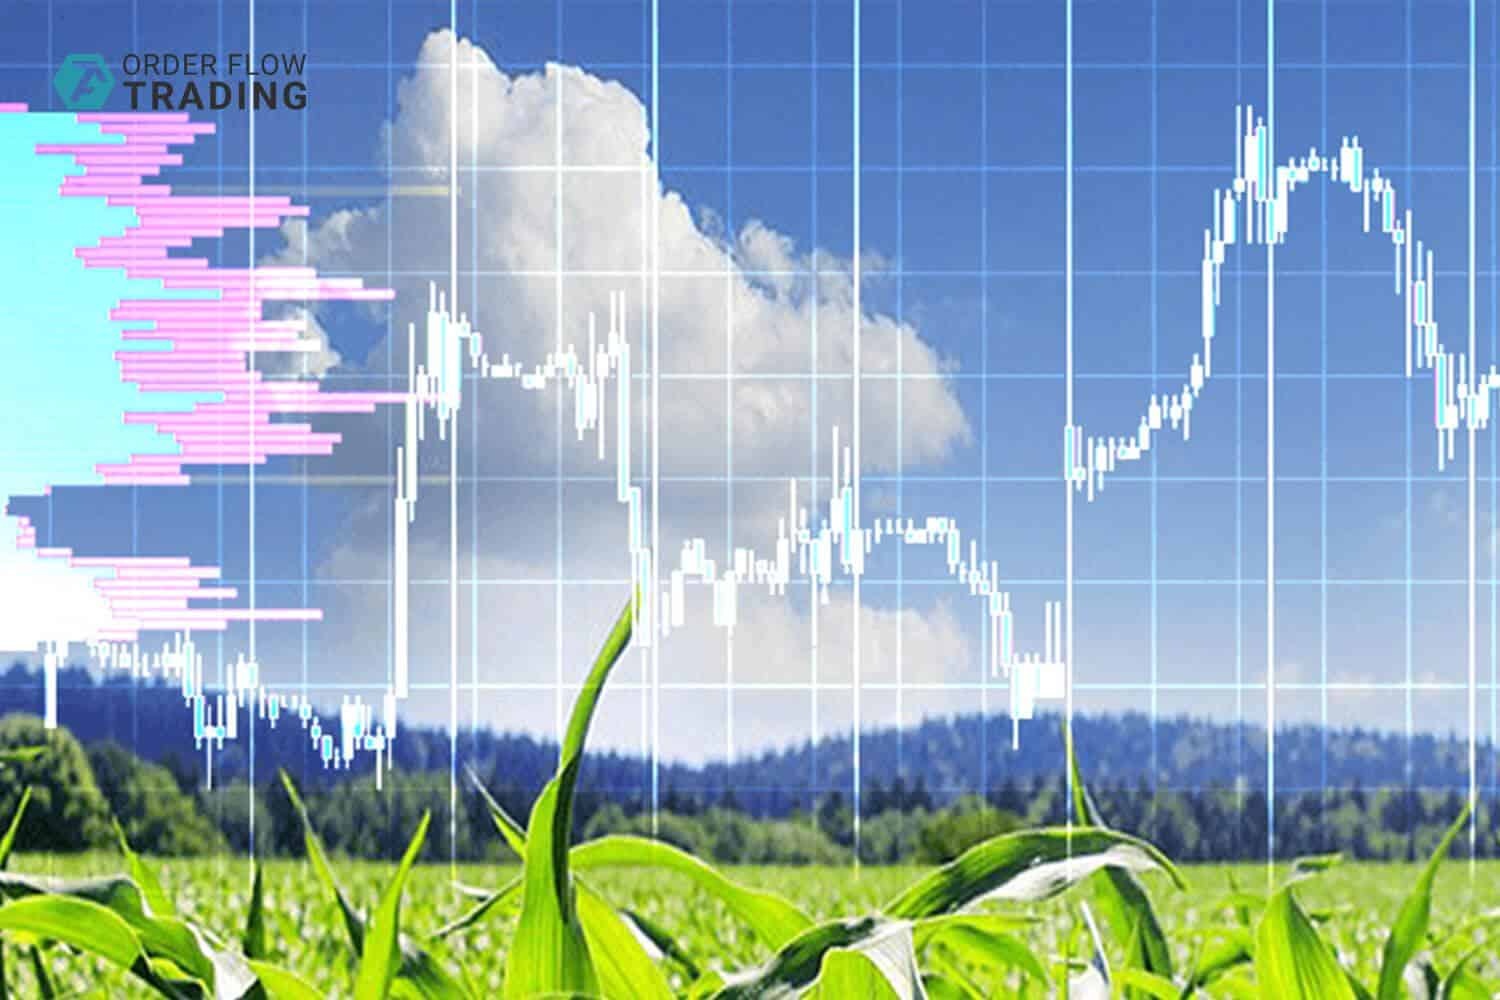 Corn futures: 7 important things you should know. Part 1